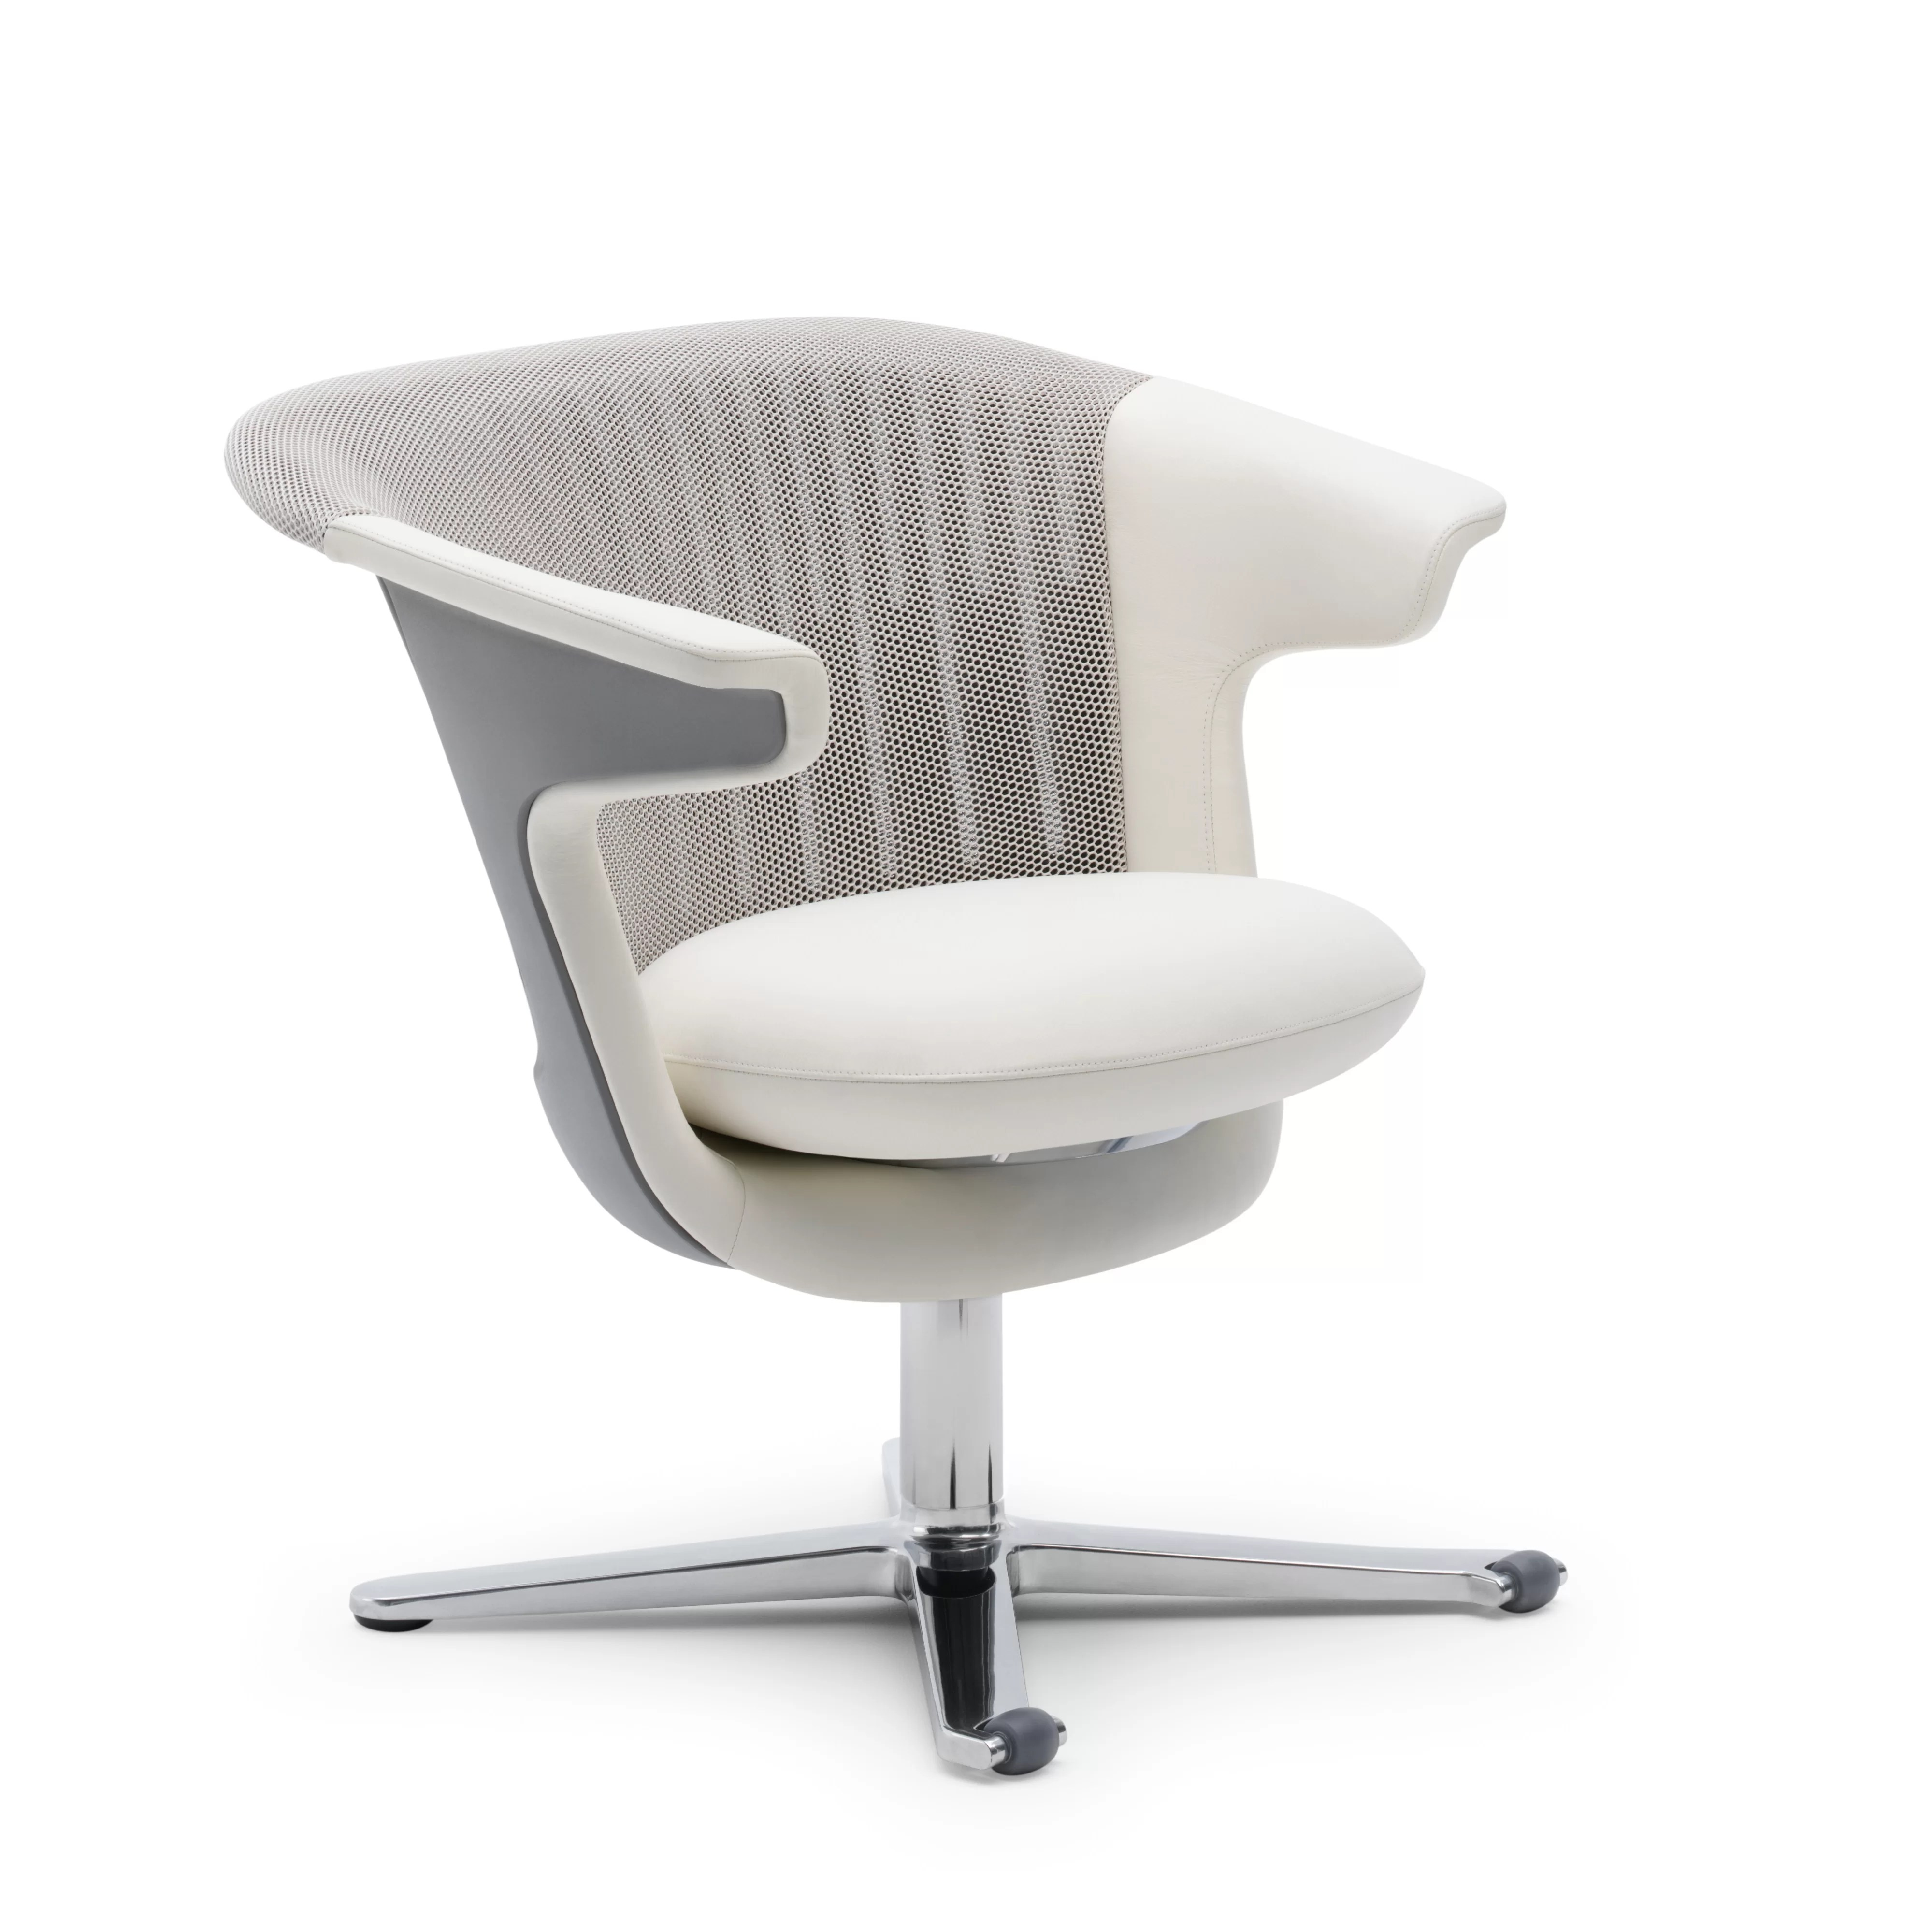 Steelcase Chair Steelcase I2i Chair And Reviews Wayfair